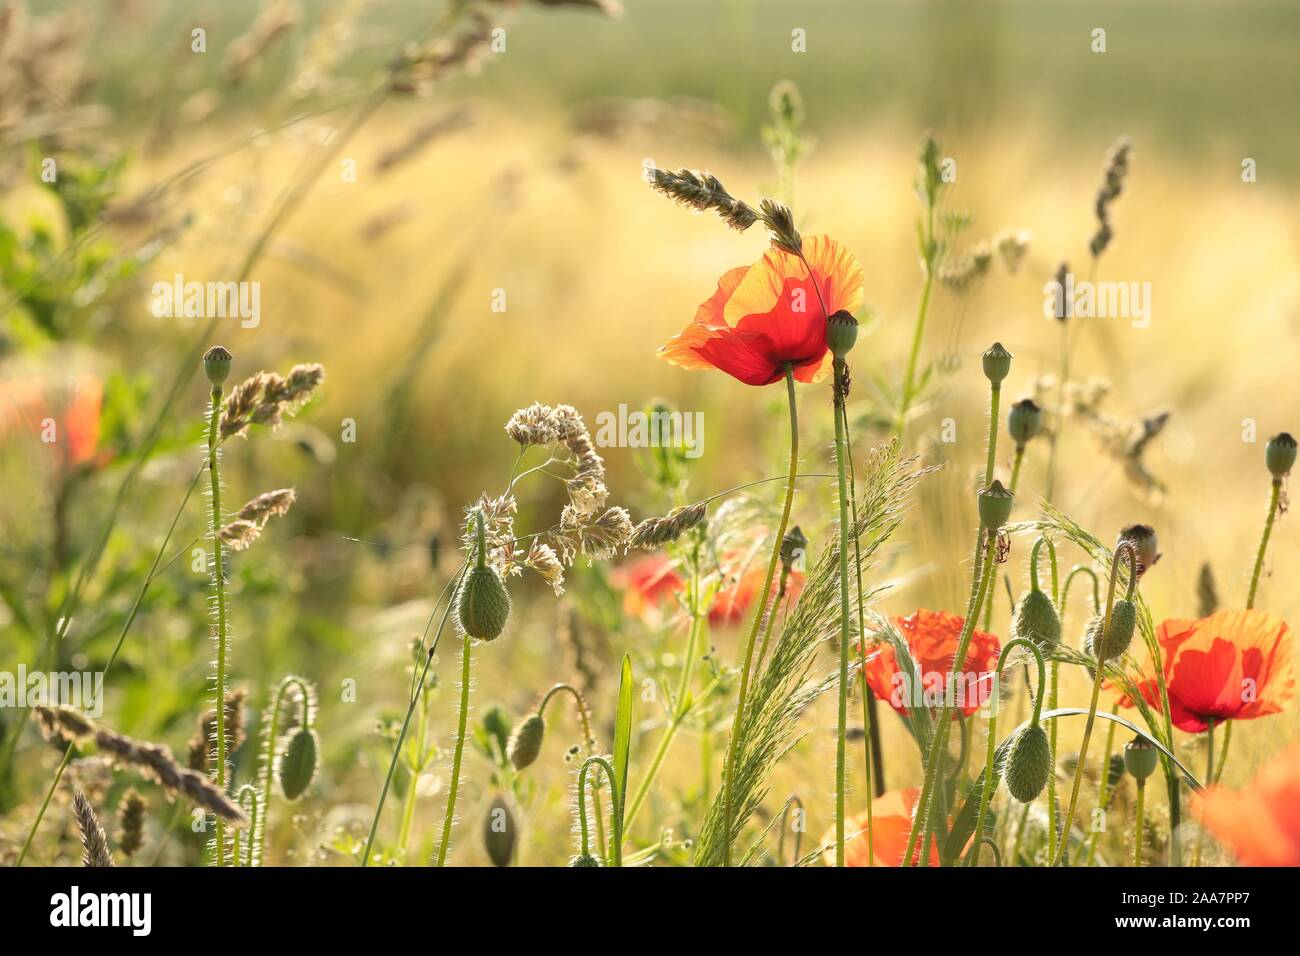 Poppy in the field in the morning. Stock Photo